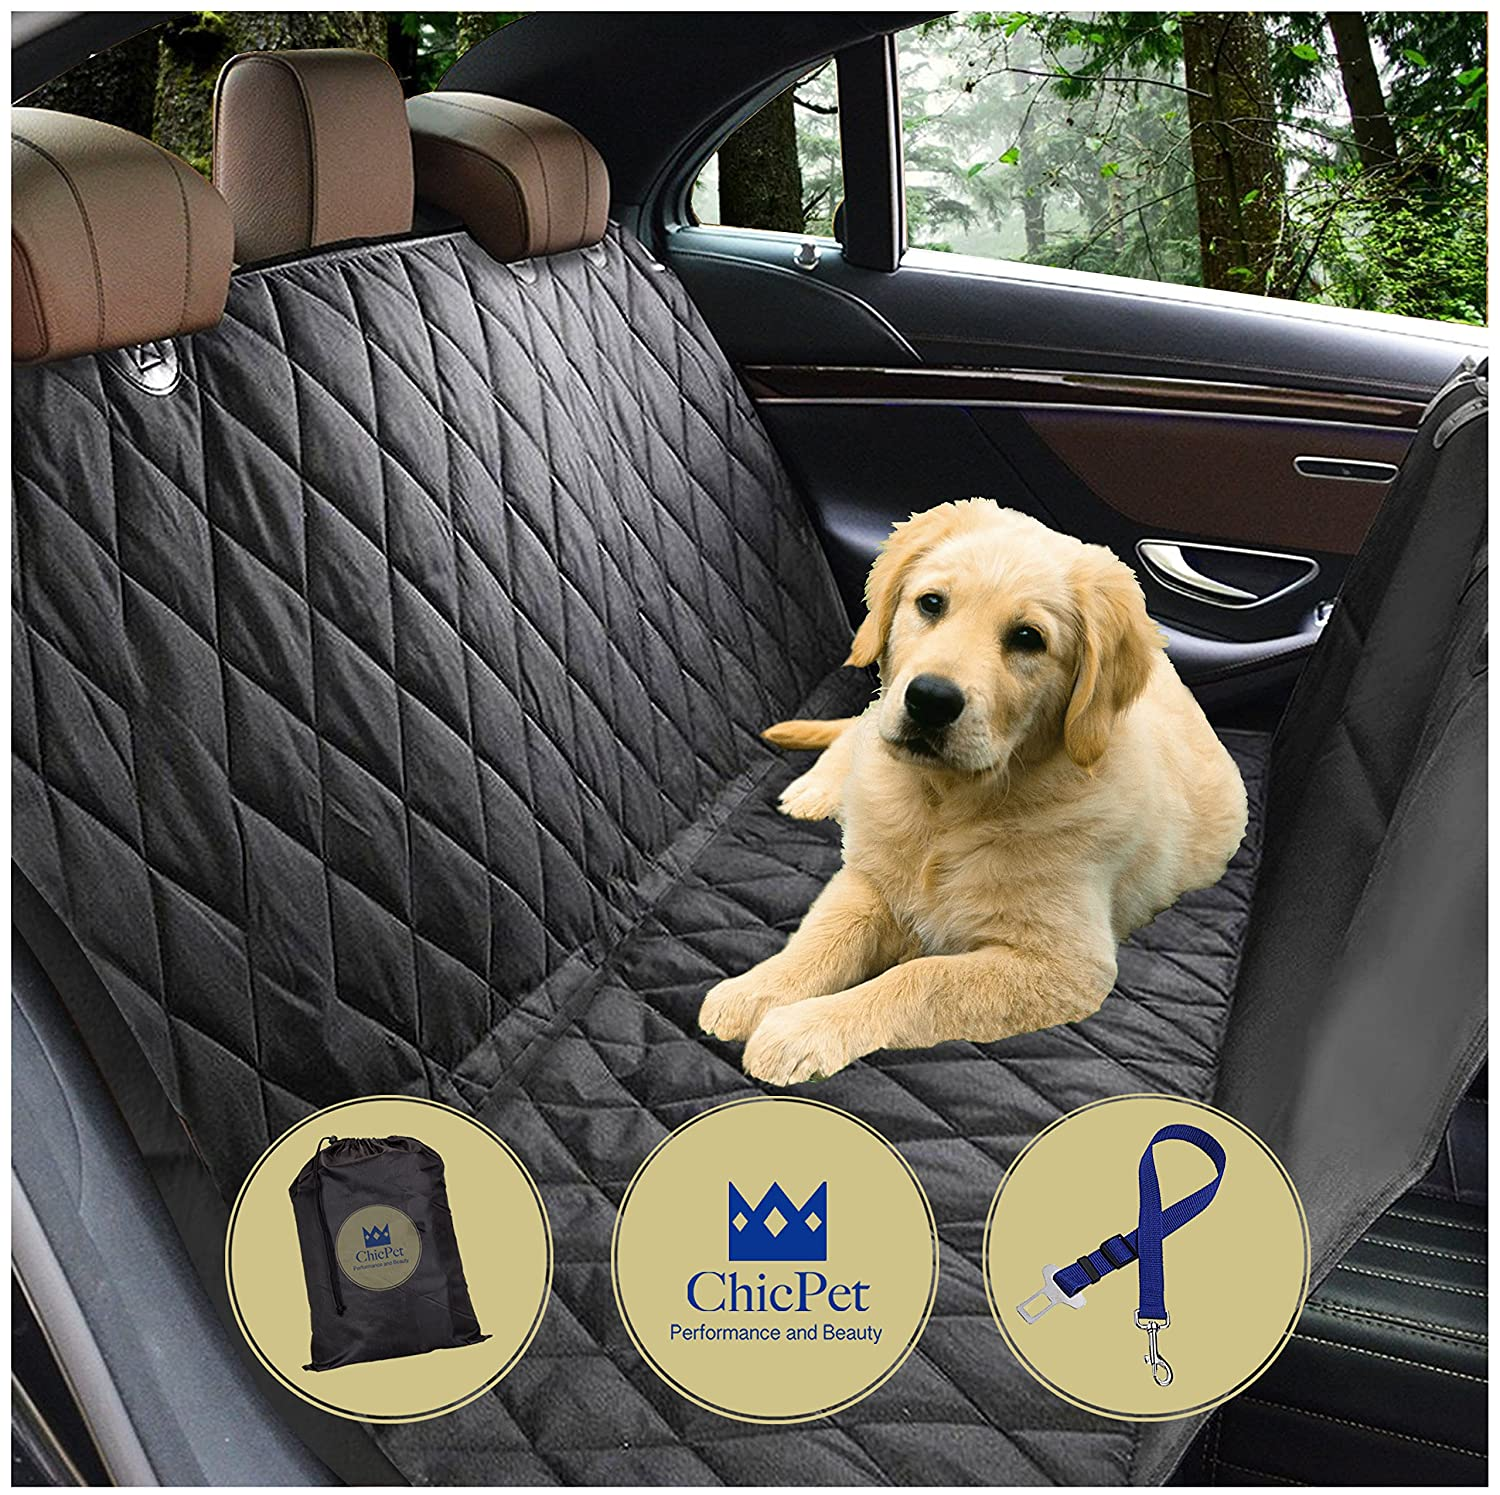 Boot Liner Fits all Cars Trucks SUVs Black Non Slip Dog Hammock Washable For Pets and Kids with Pet Seat Belt Lead and Storage Bag Waterproof Dog Car Seat Cover